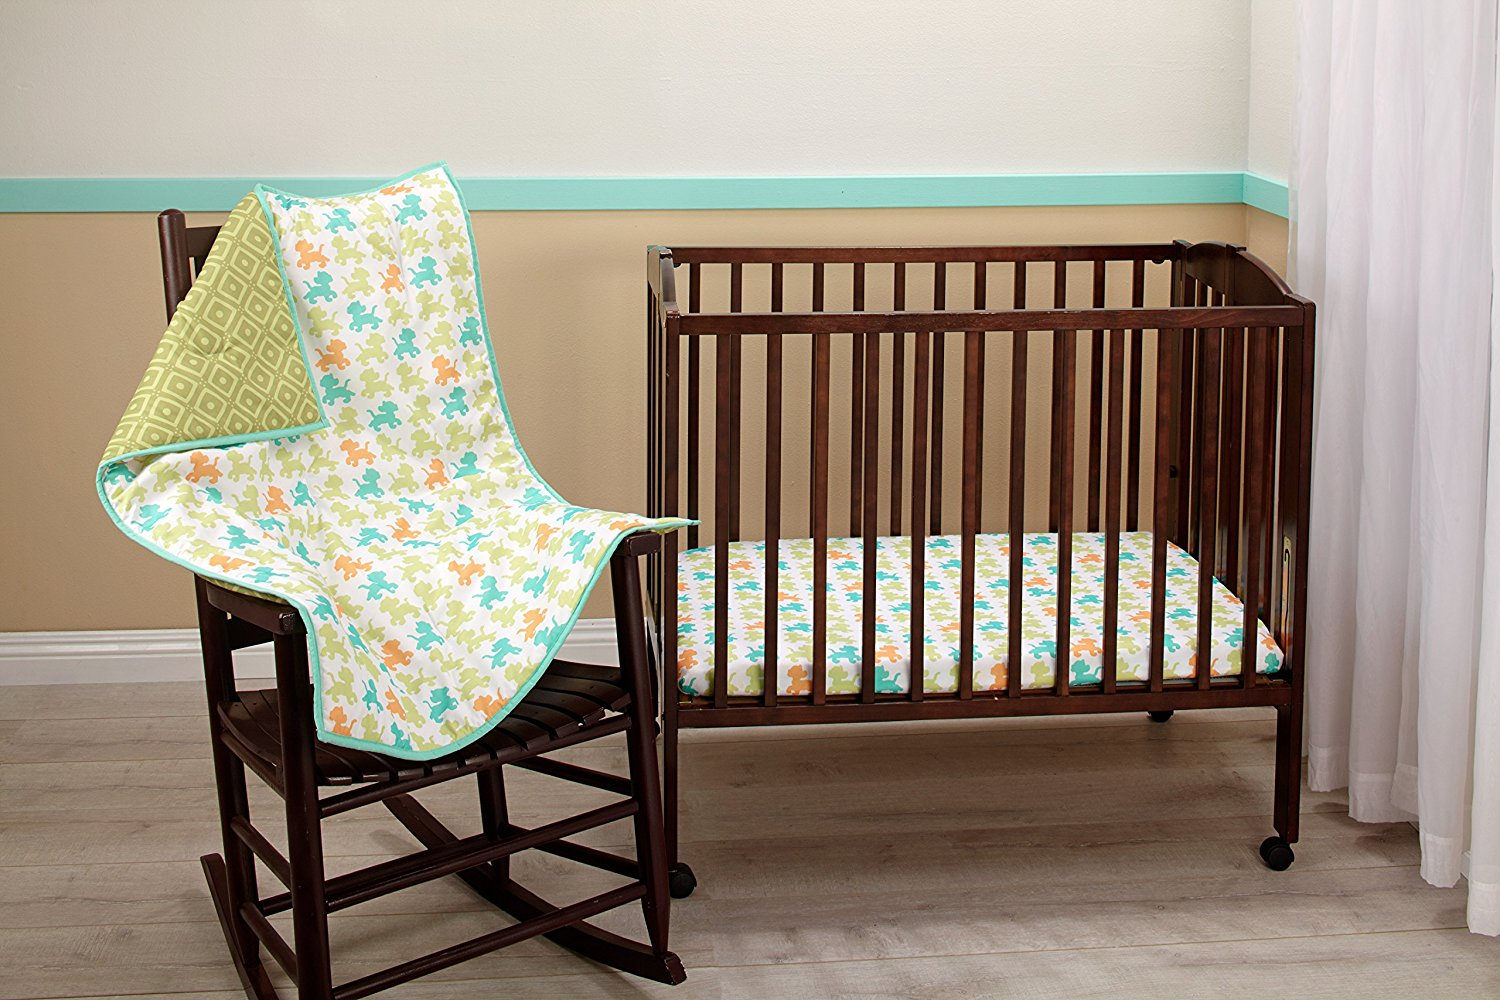 Monkey Crib Bedding Set | Lion King Nursery Set | Princess Crib Bedding Sets